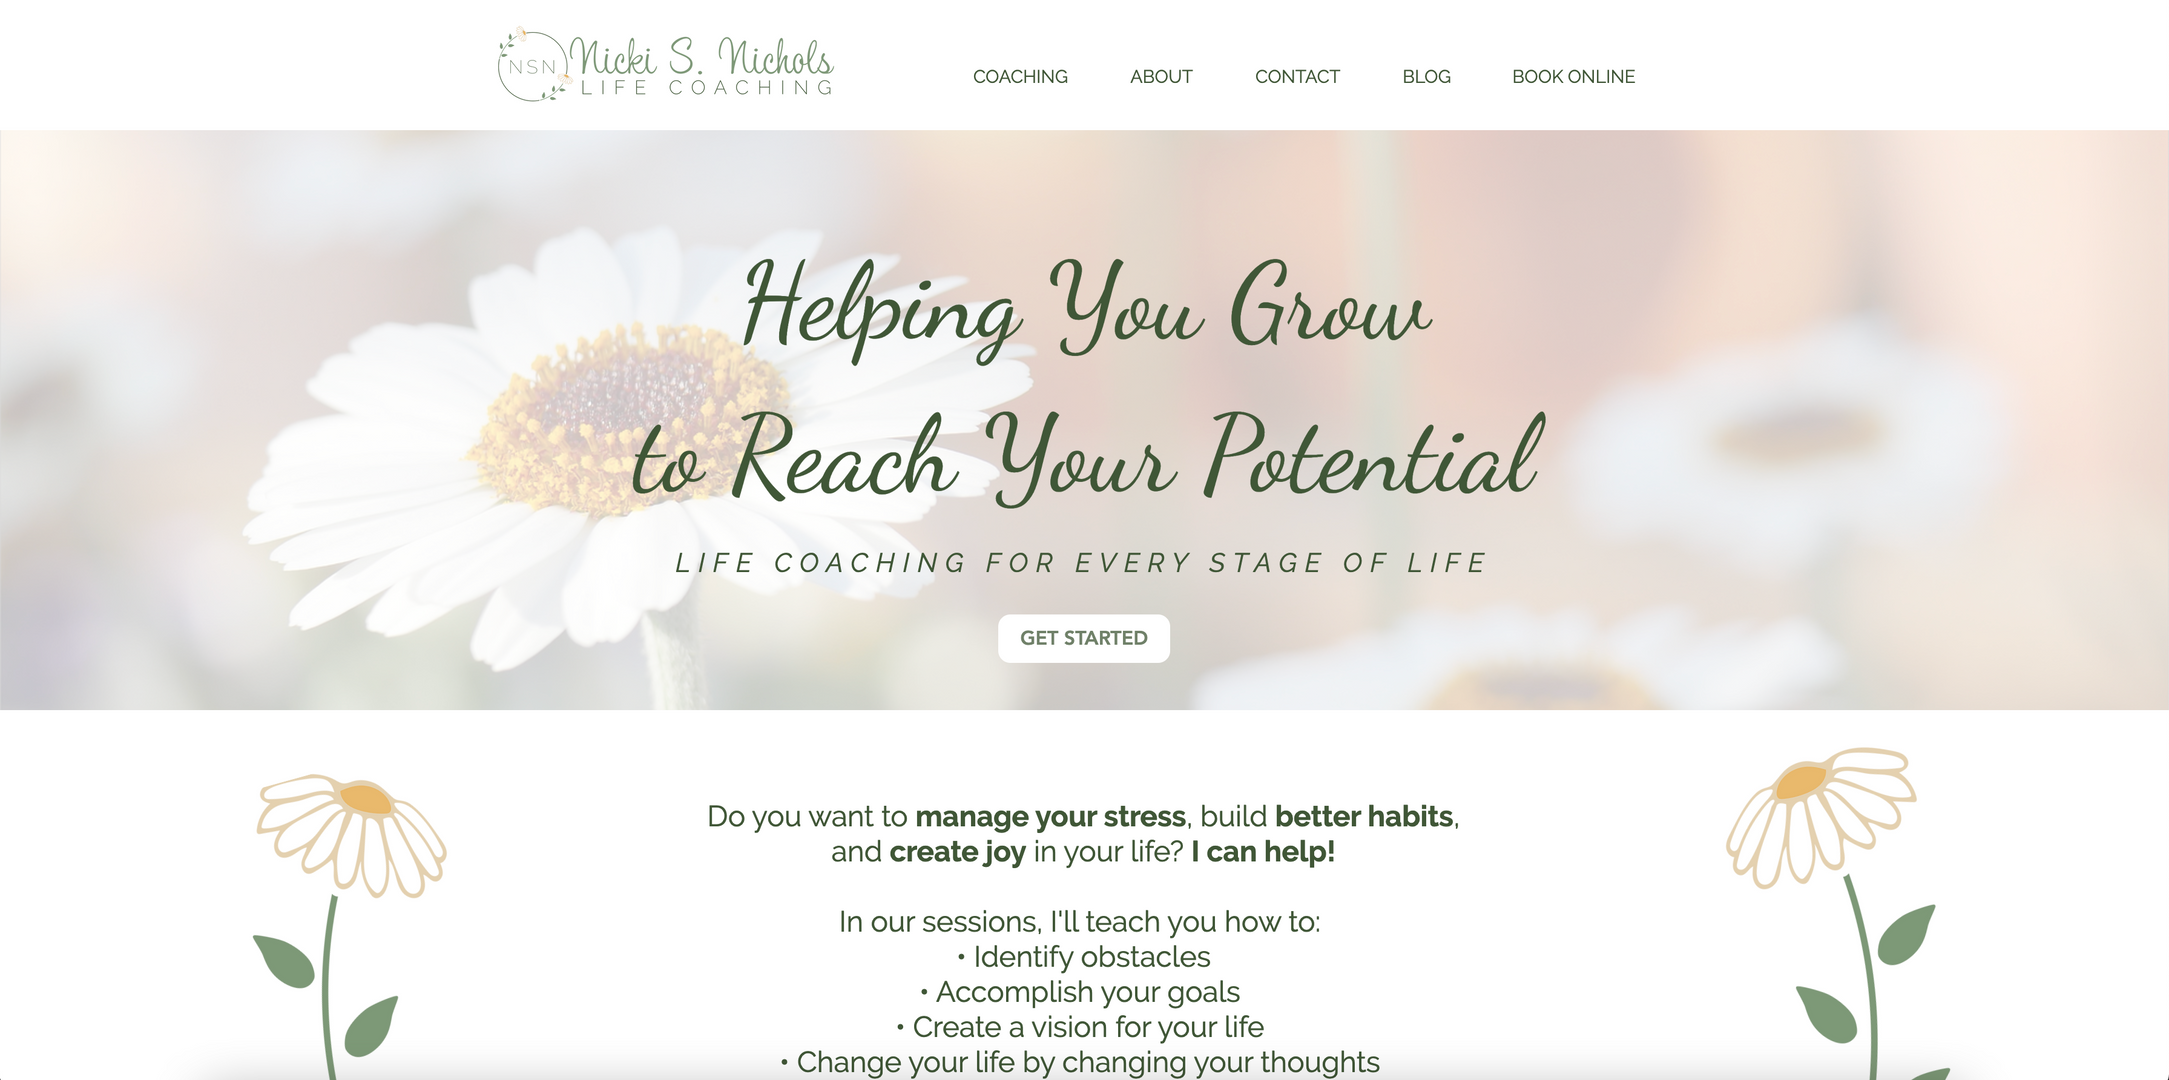 NSN Life Coaching Home Page